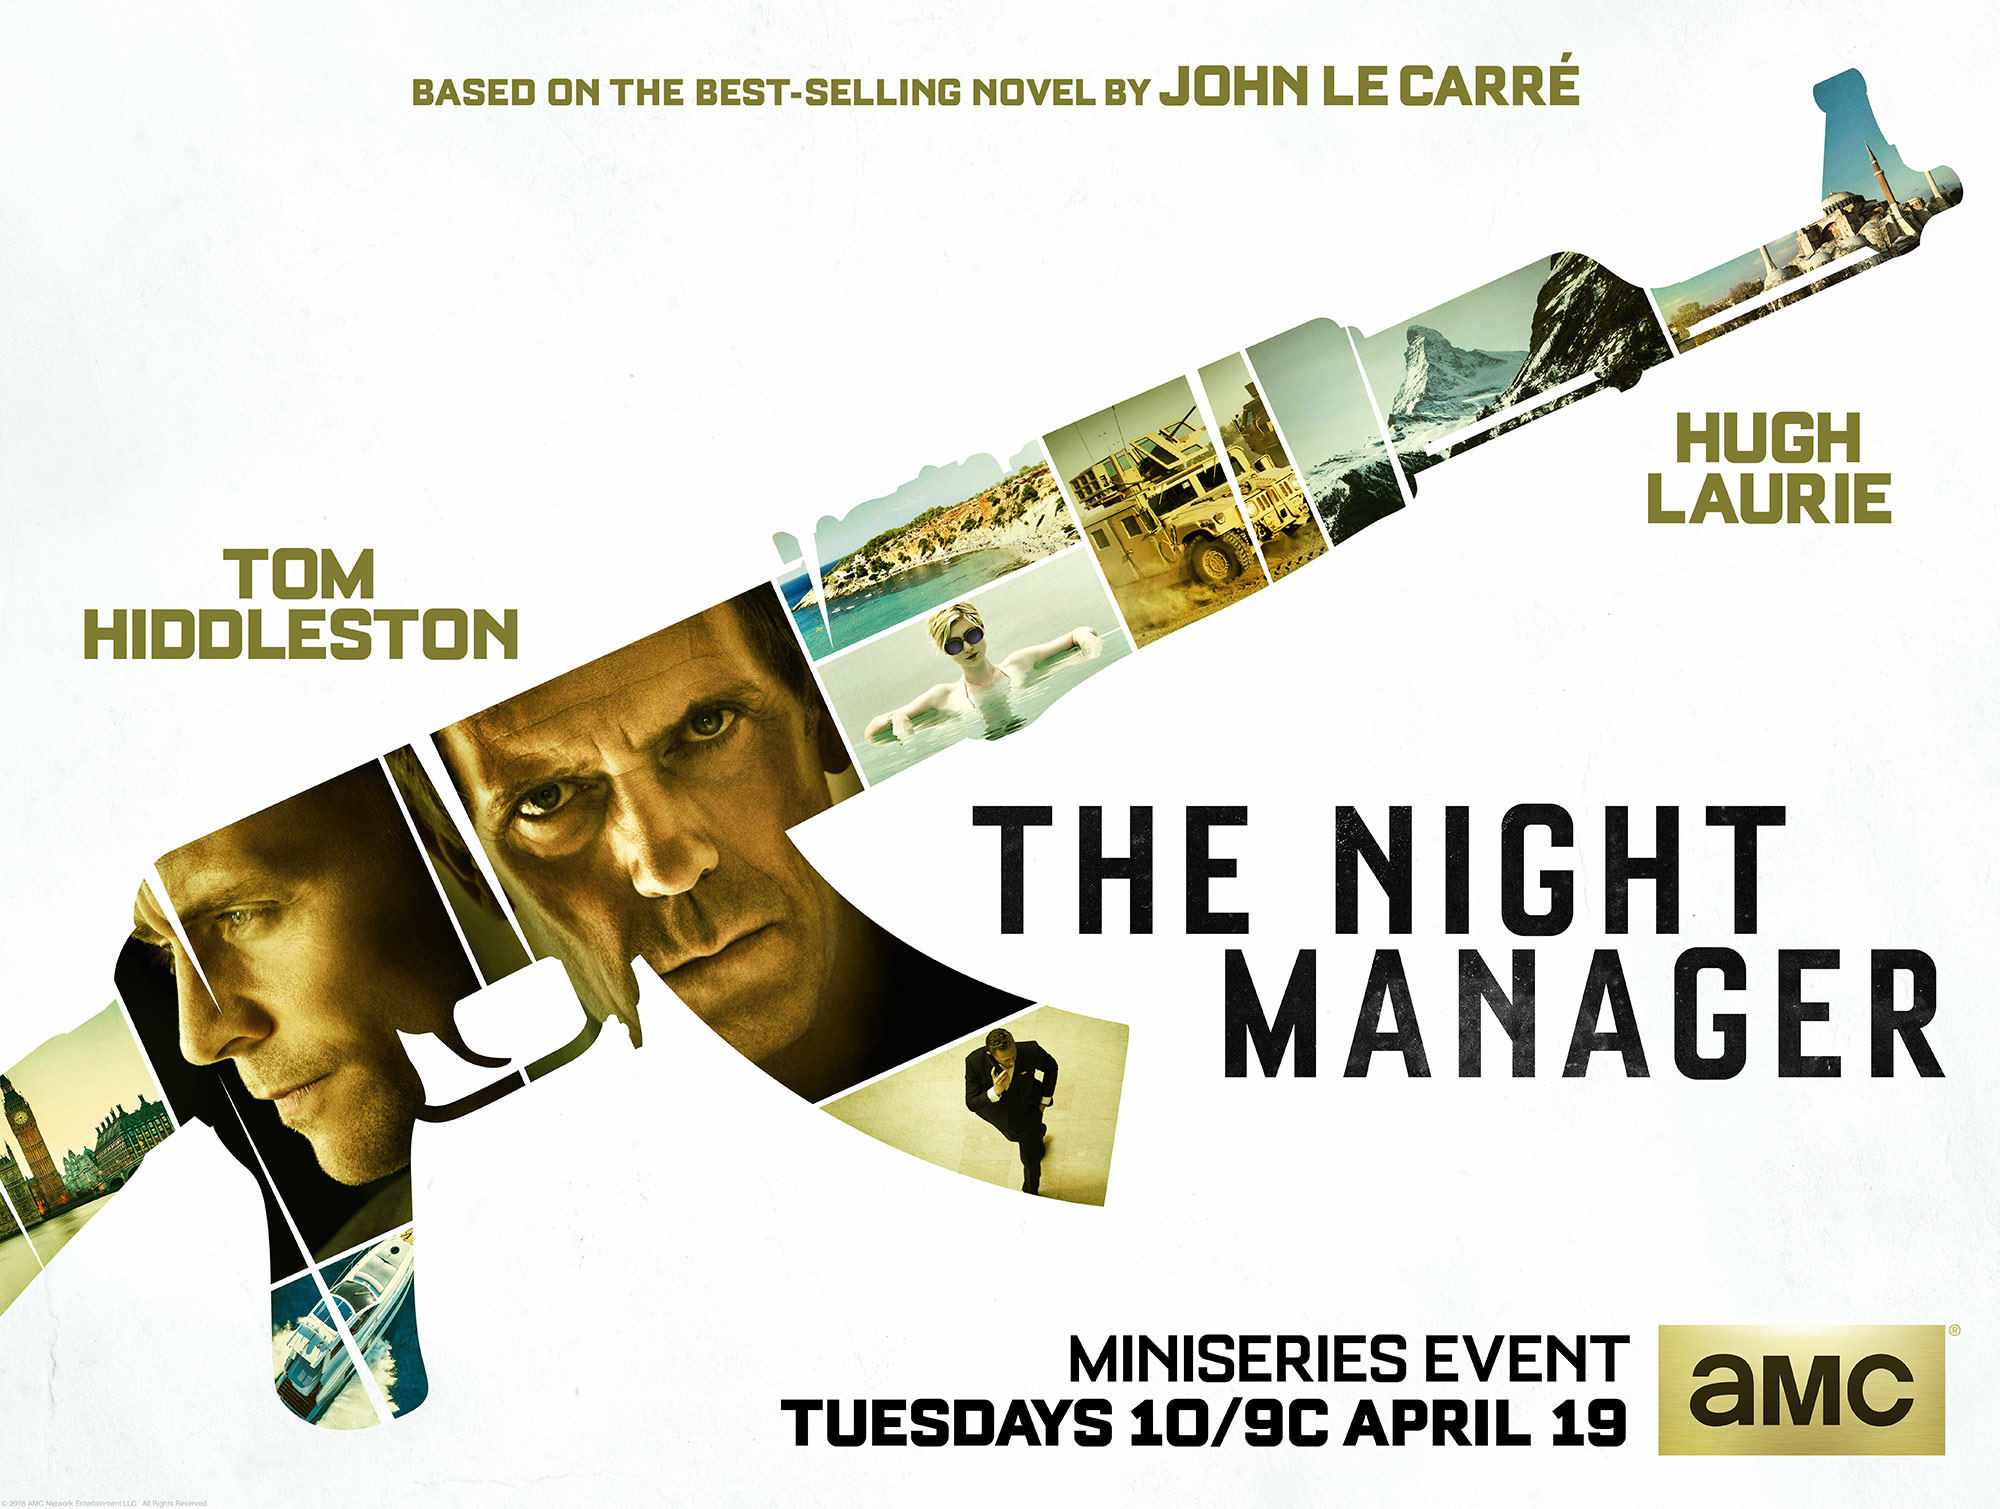 the-night-manager-key-art-poster-2000x.jpg